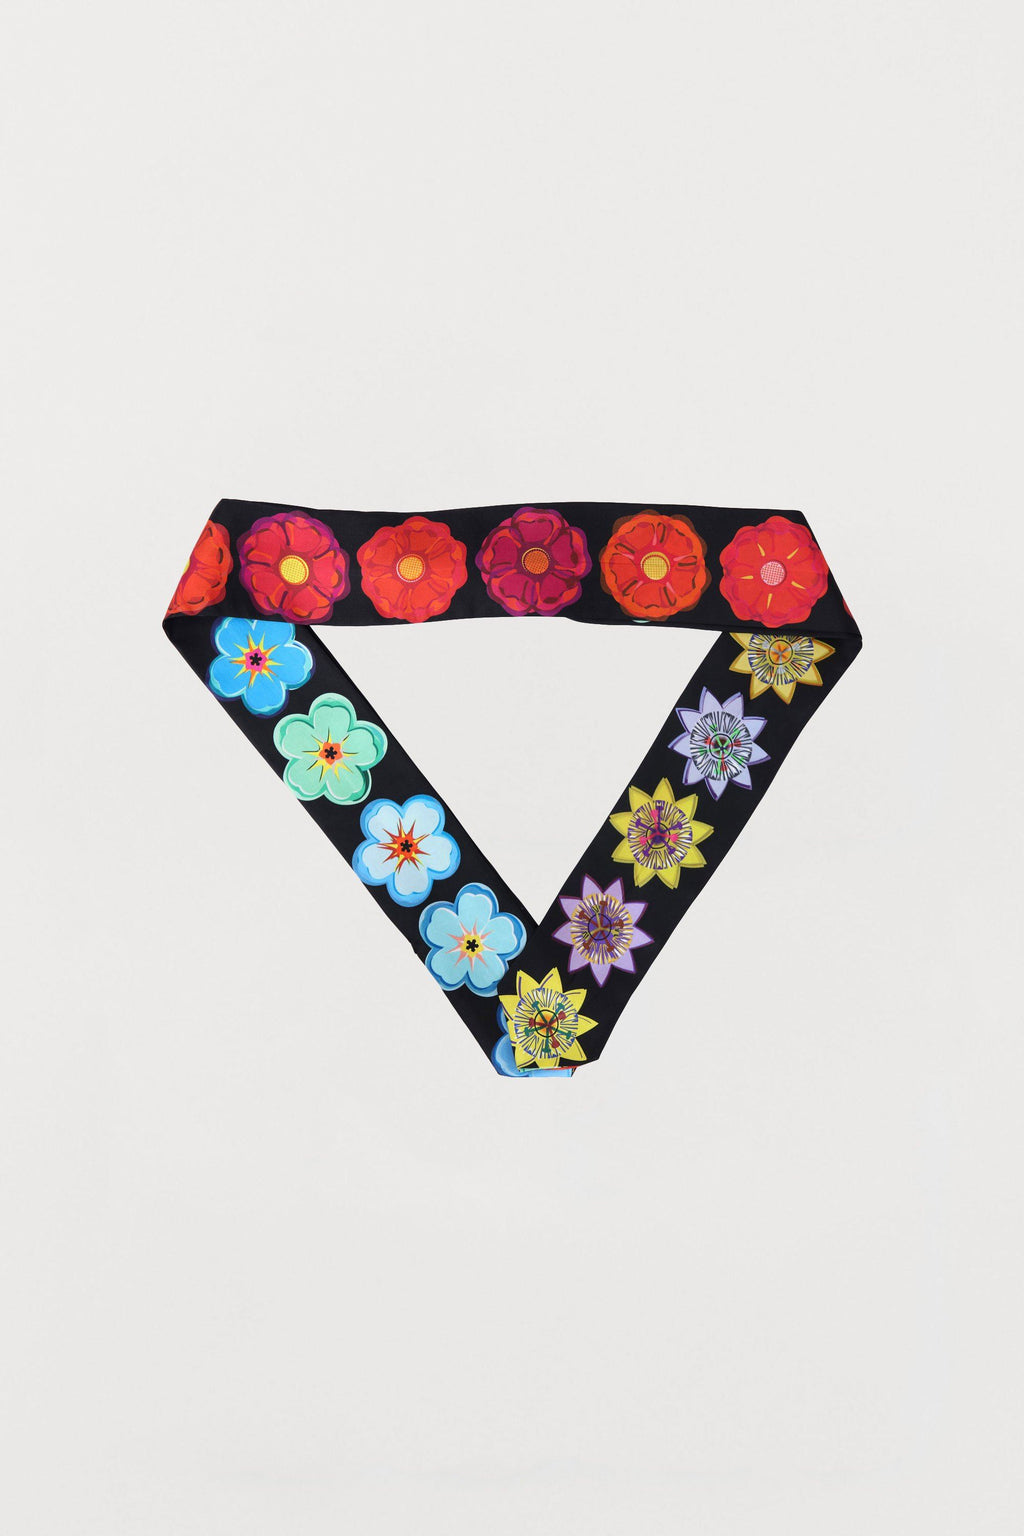 Mixed Flowers Silk Scarf - Three Sided Skinny - Bianca Elgar